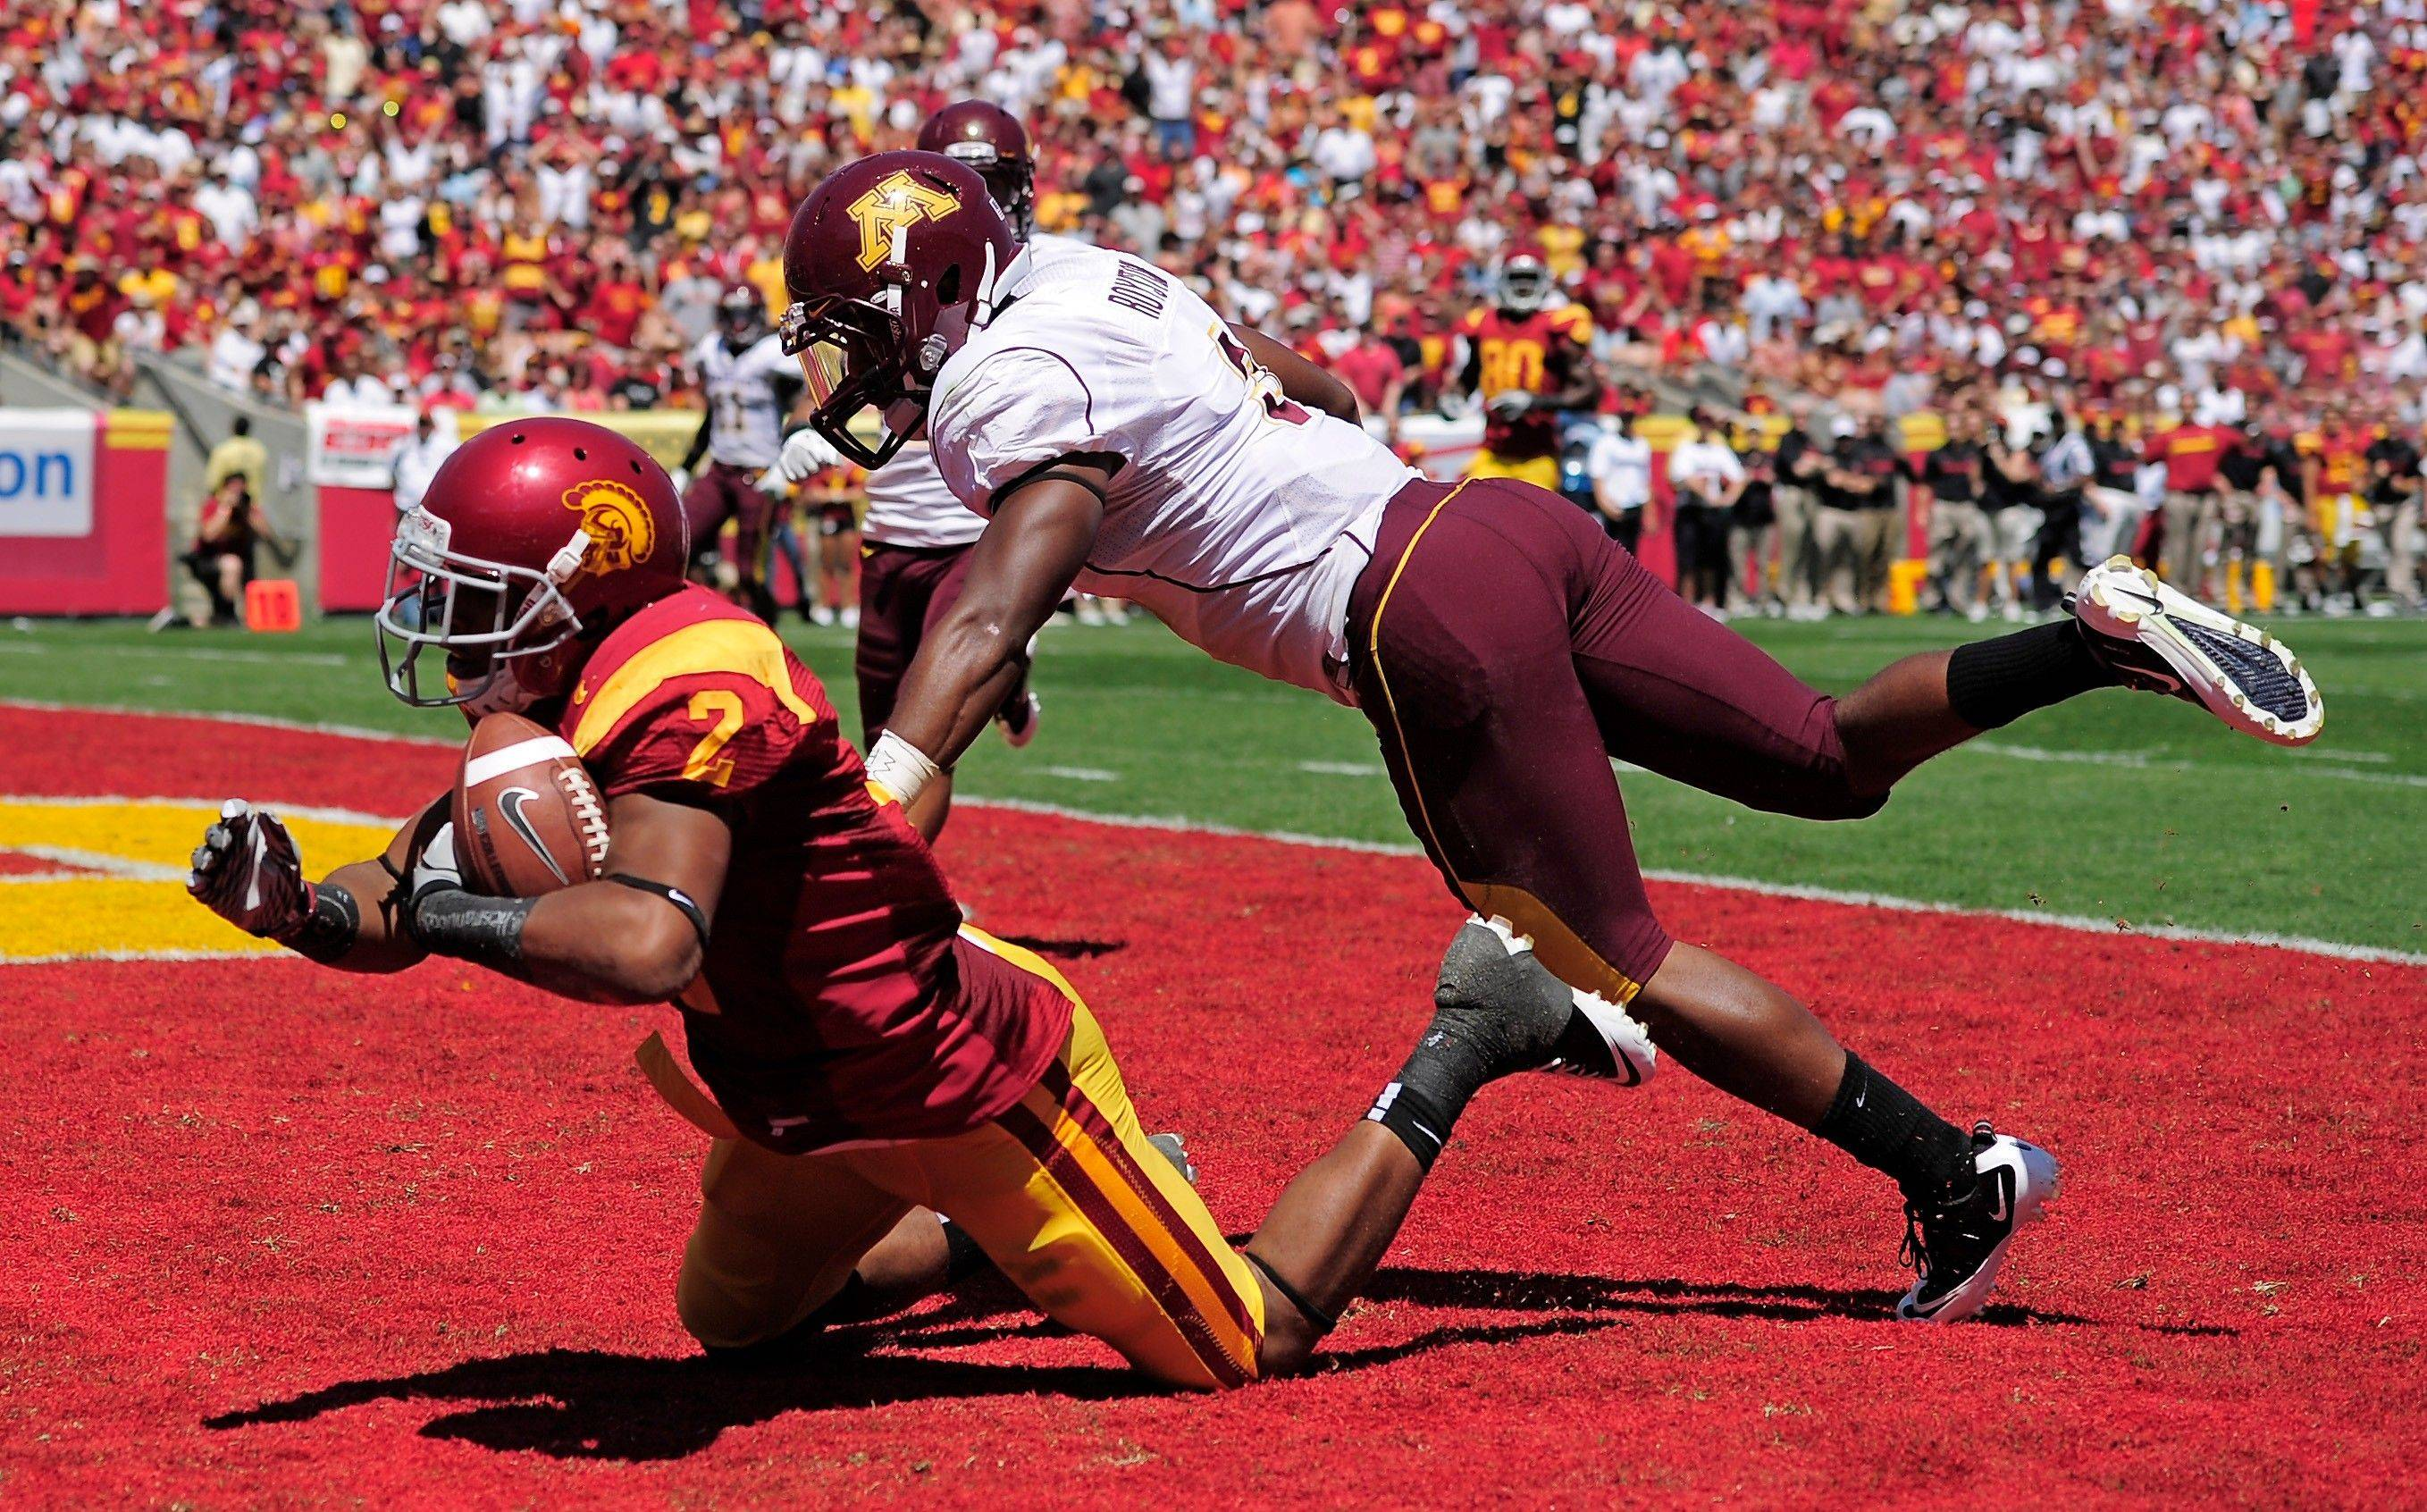 Southern California wide receiver Robert Woods catches a touchdown pass as Minnesota defensive back Kim Royston defends during the first half Saturday.